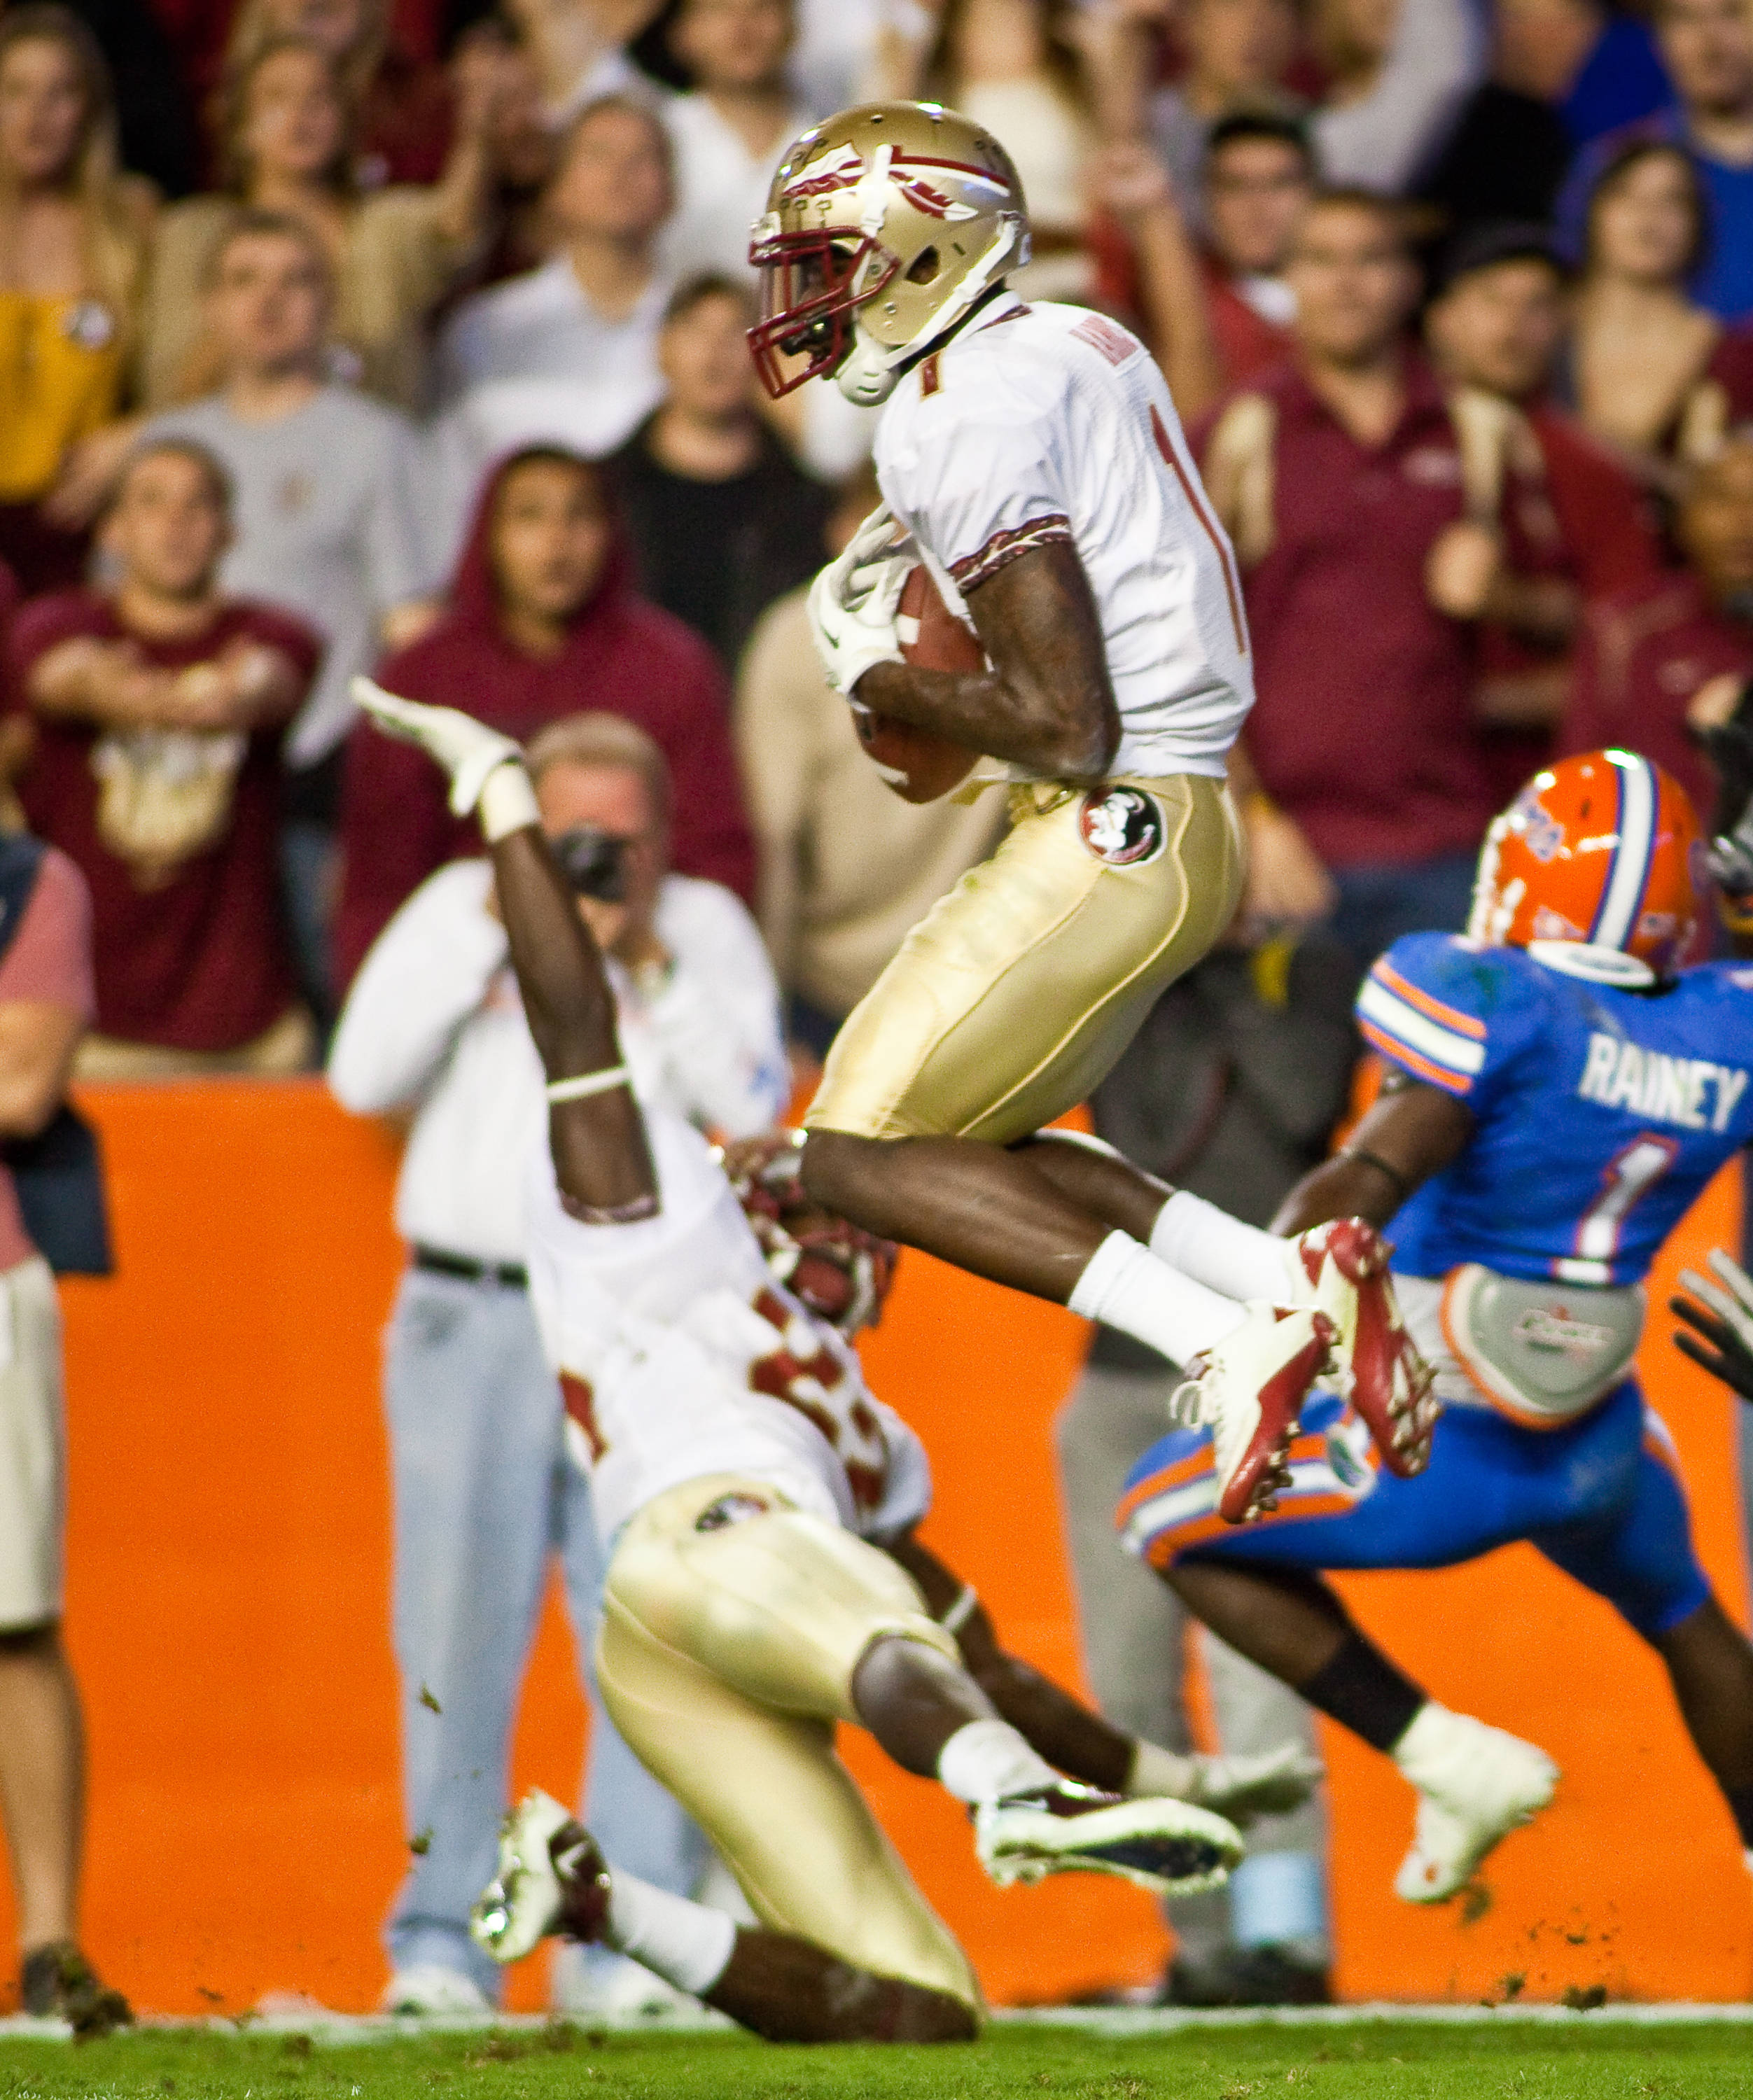 Mike Harris (1) intercepts a John Brantley pass in the Swamp.  The Noles picked off 4 passes that night in Gainesville.